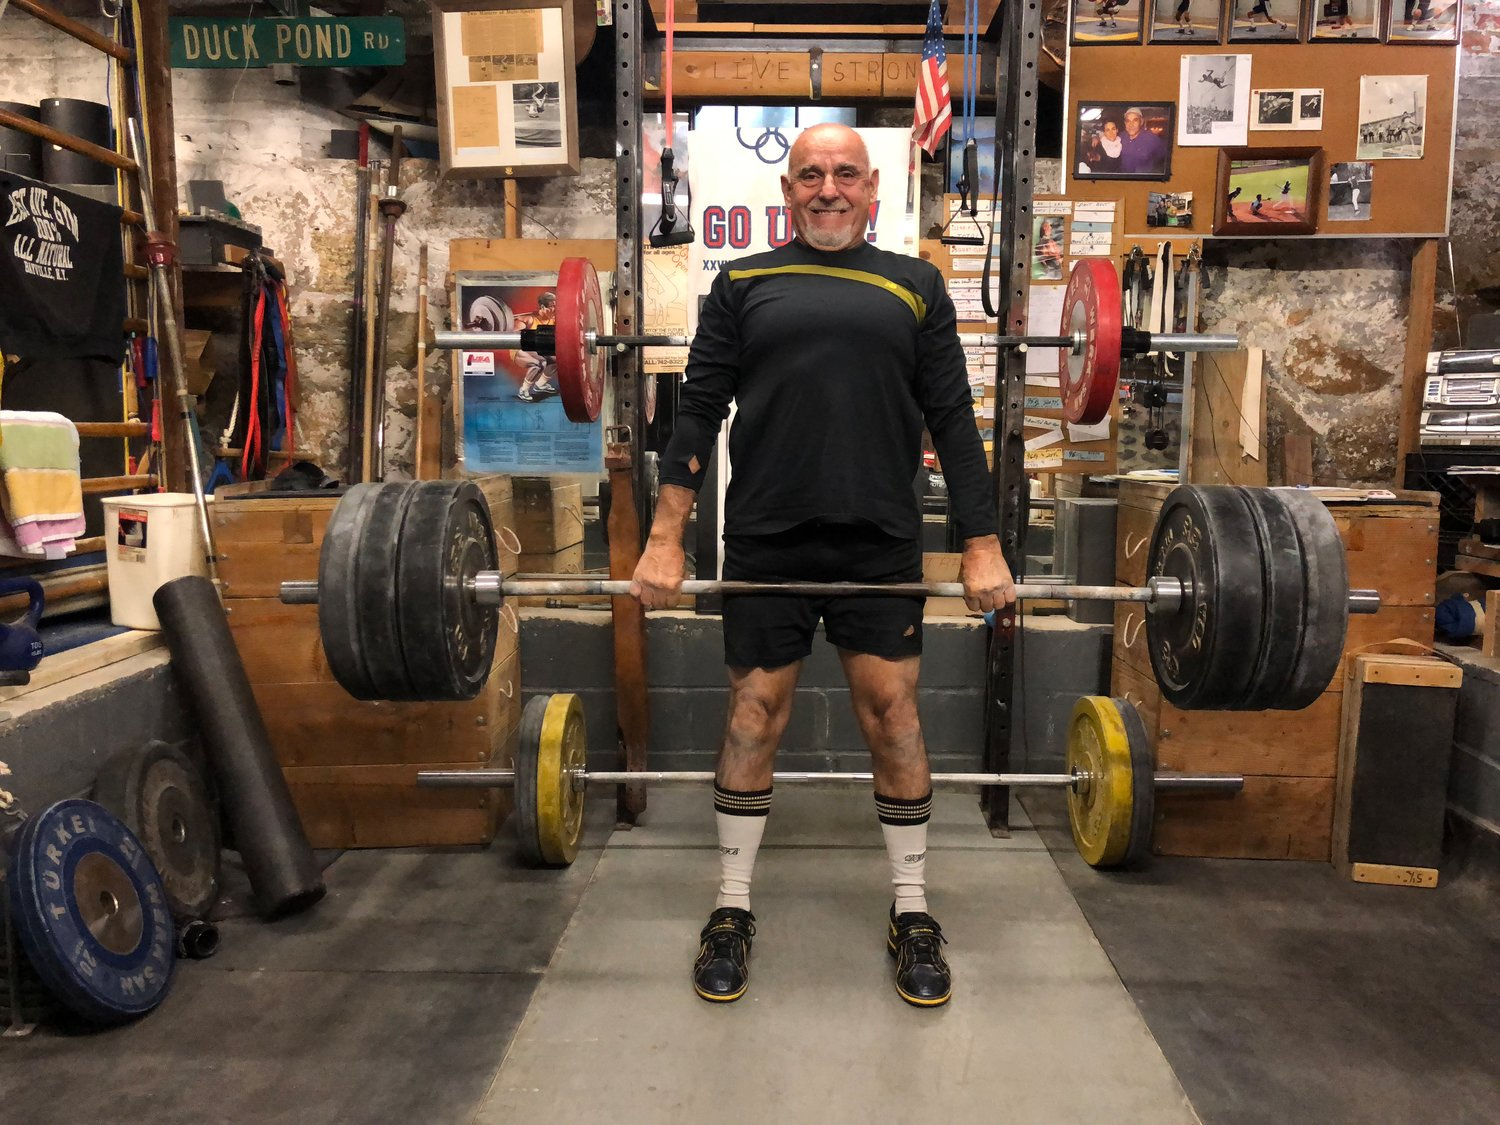 Richard Landry, 71, of Glen Cove, did a dead lift in his home gym.